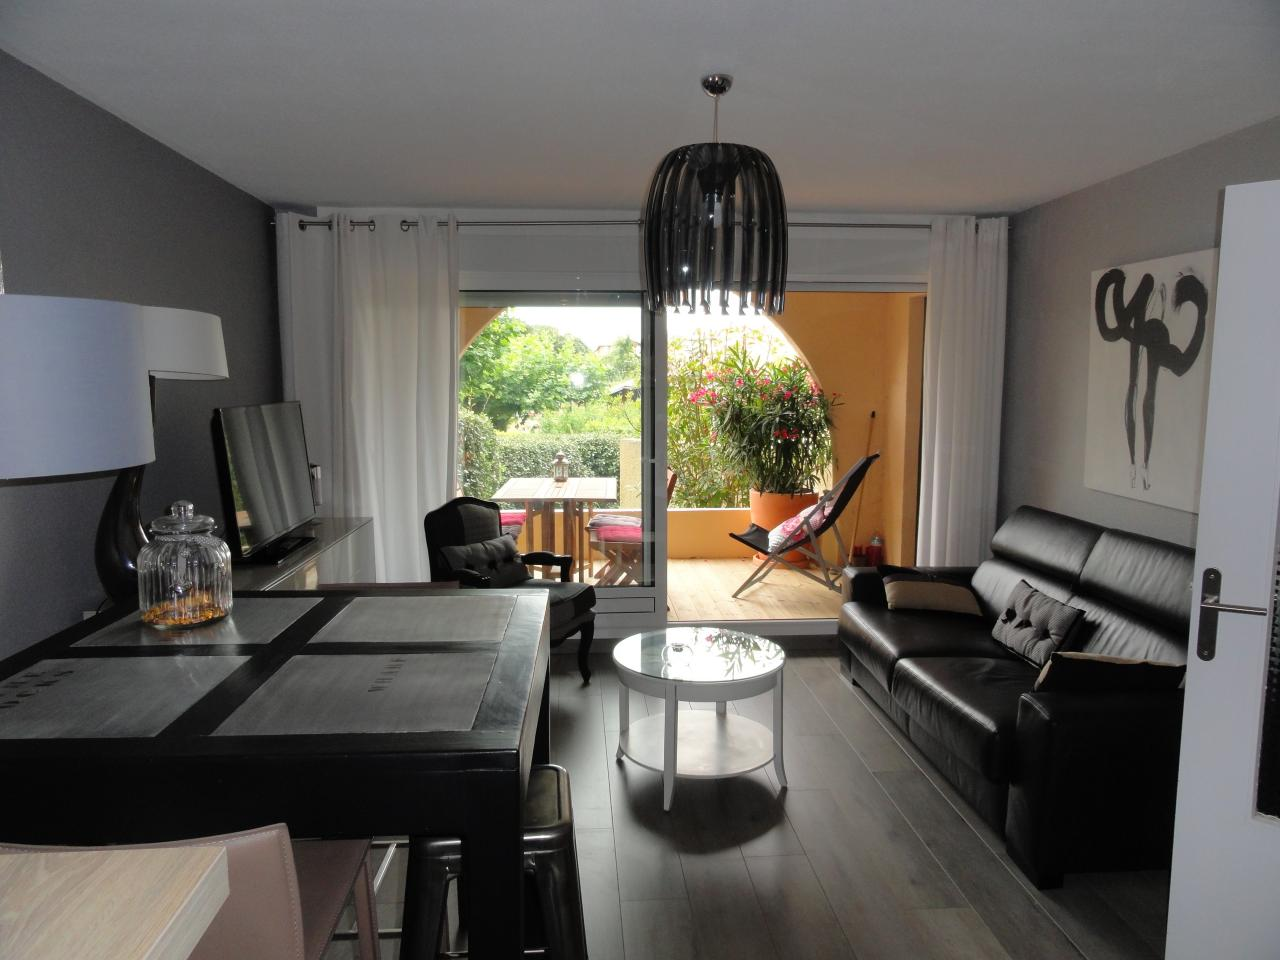 Appartement t2 anglet anglet location pays basque 64 for Appartement t2 bordeaux location